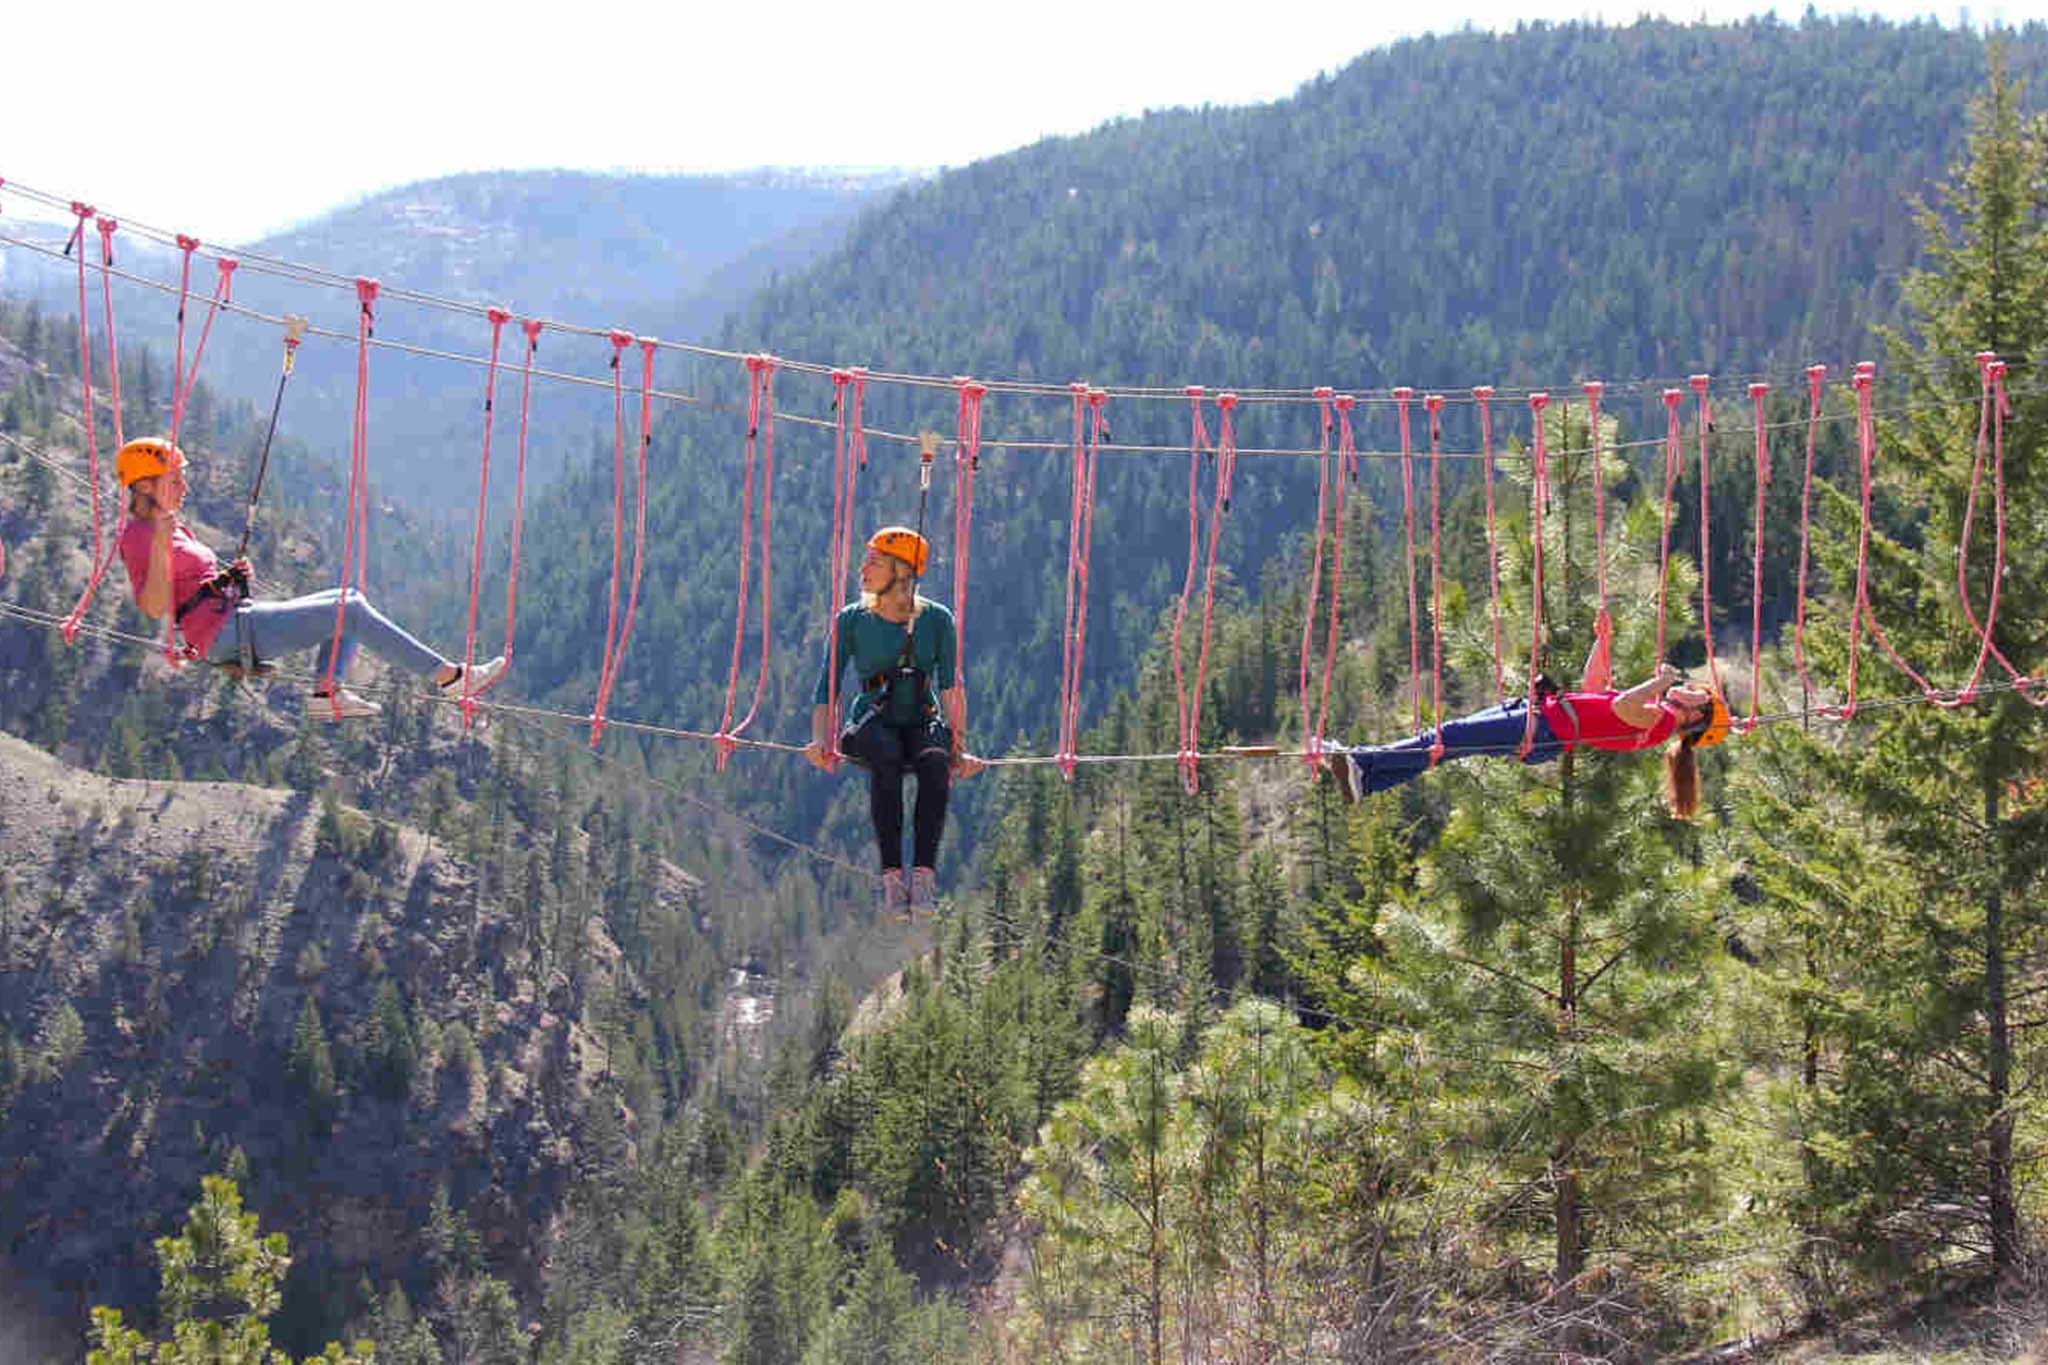 Myra Canyon Adventure Park, eitw